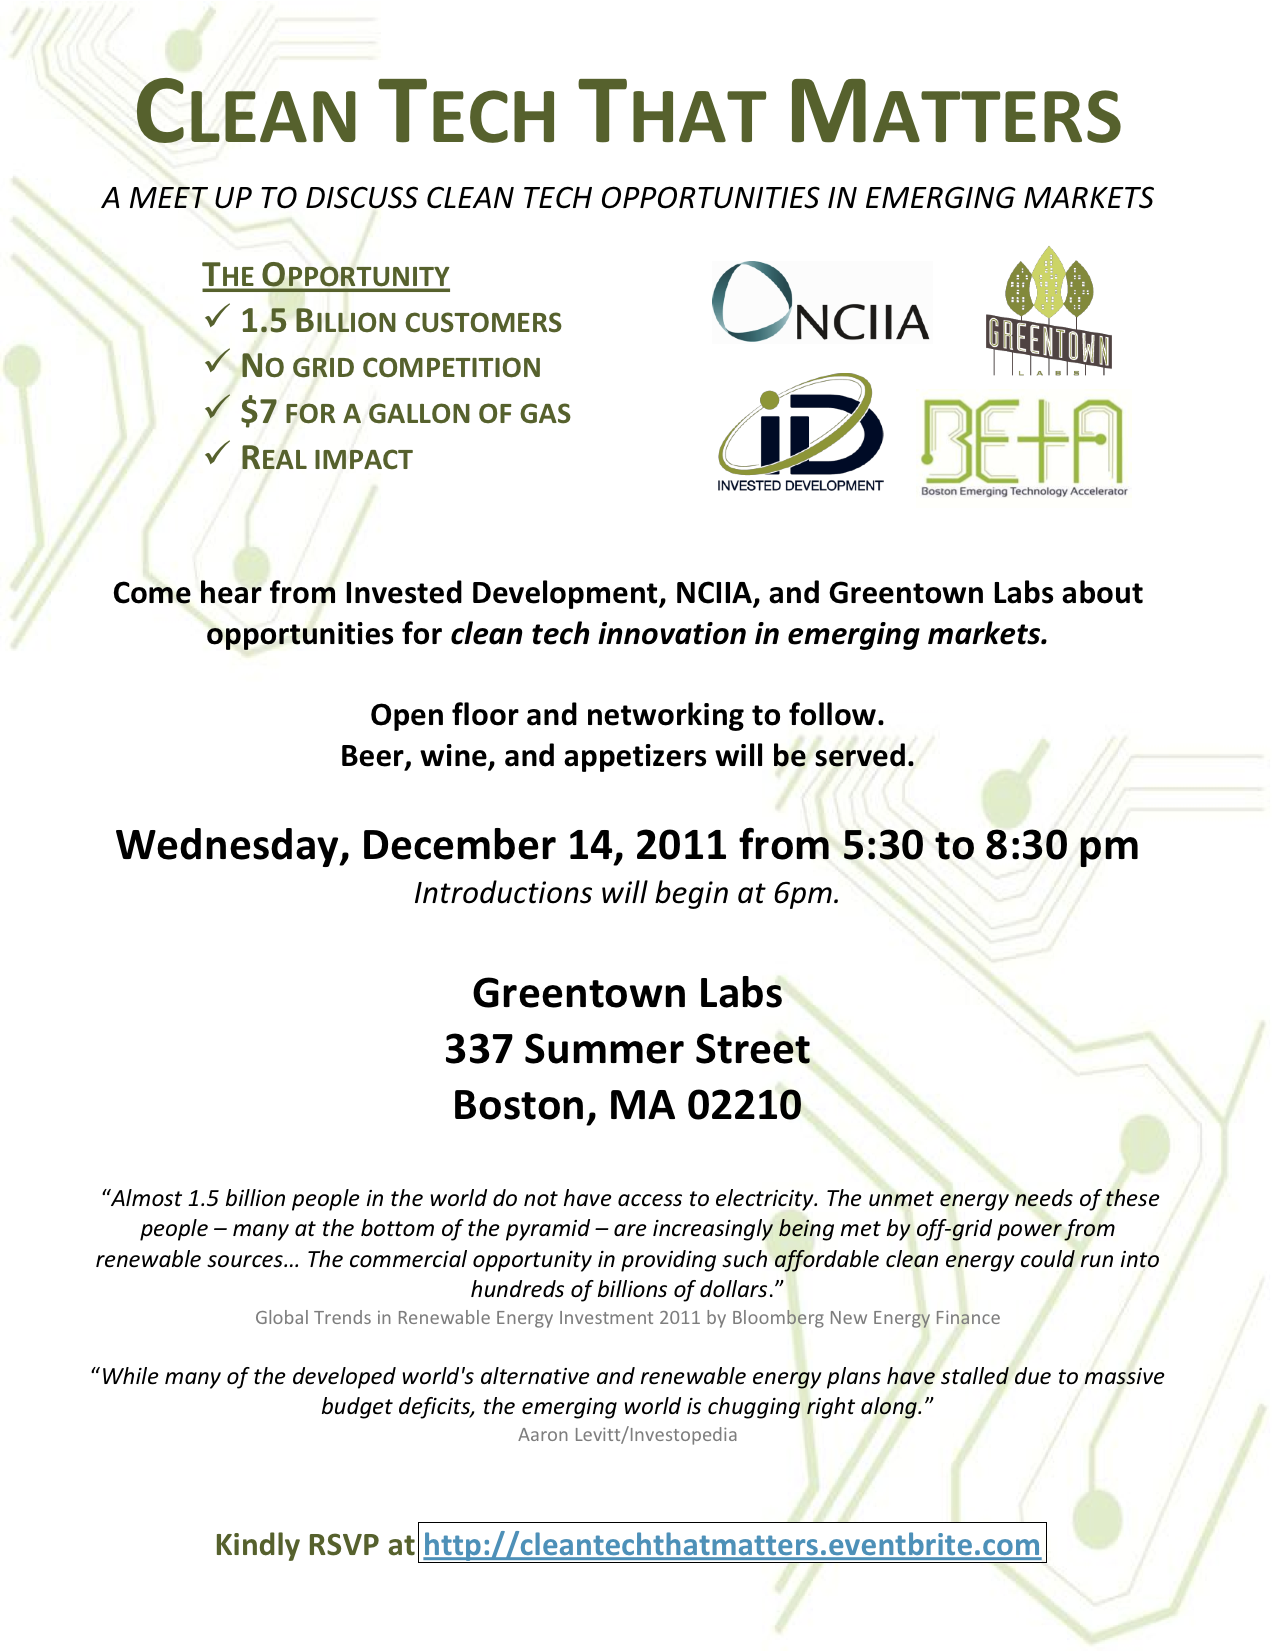 Come hear from Invested Development, NCIIA, and Greentown Labs about opportunities for clean tech innovation in emerging markets. Open floor and networking to follow. Beer, wine, and appetizers will be served.